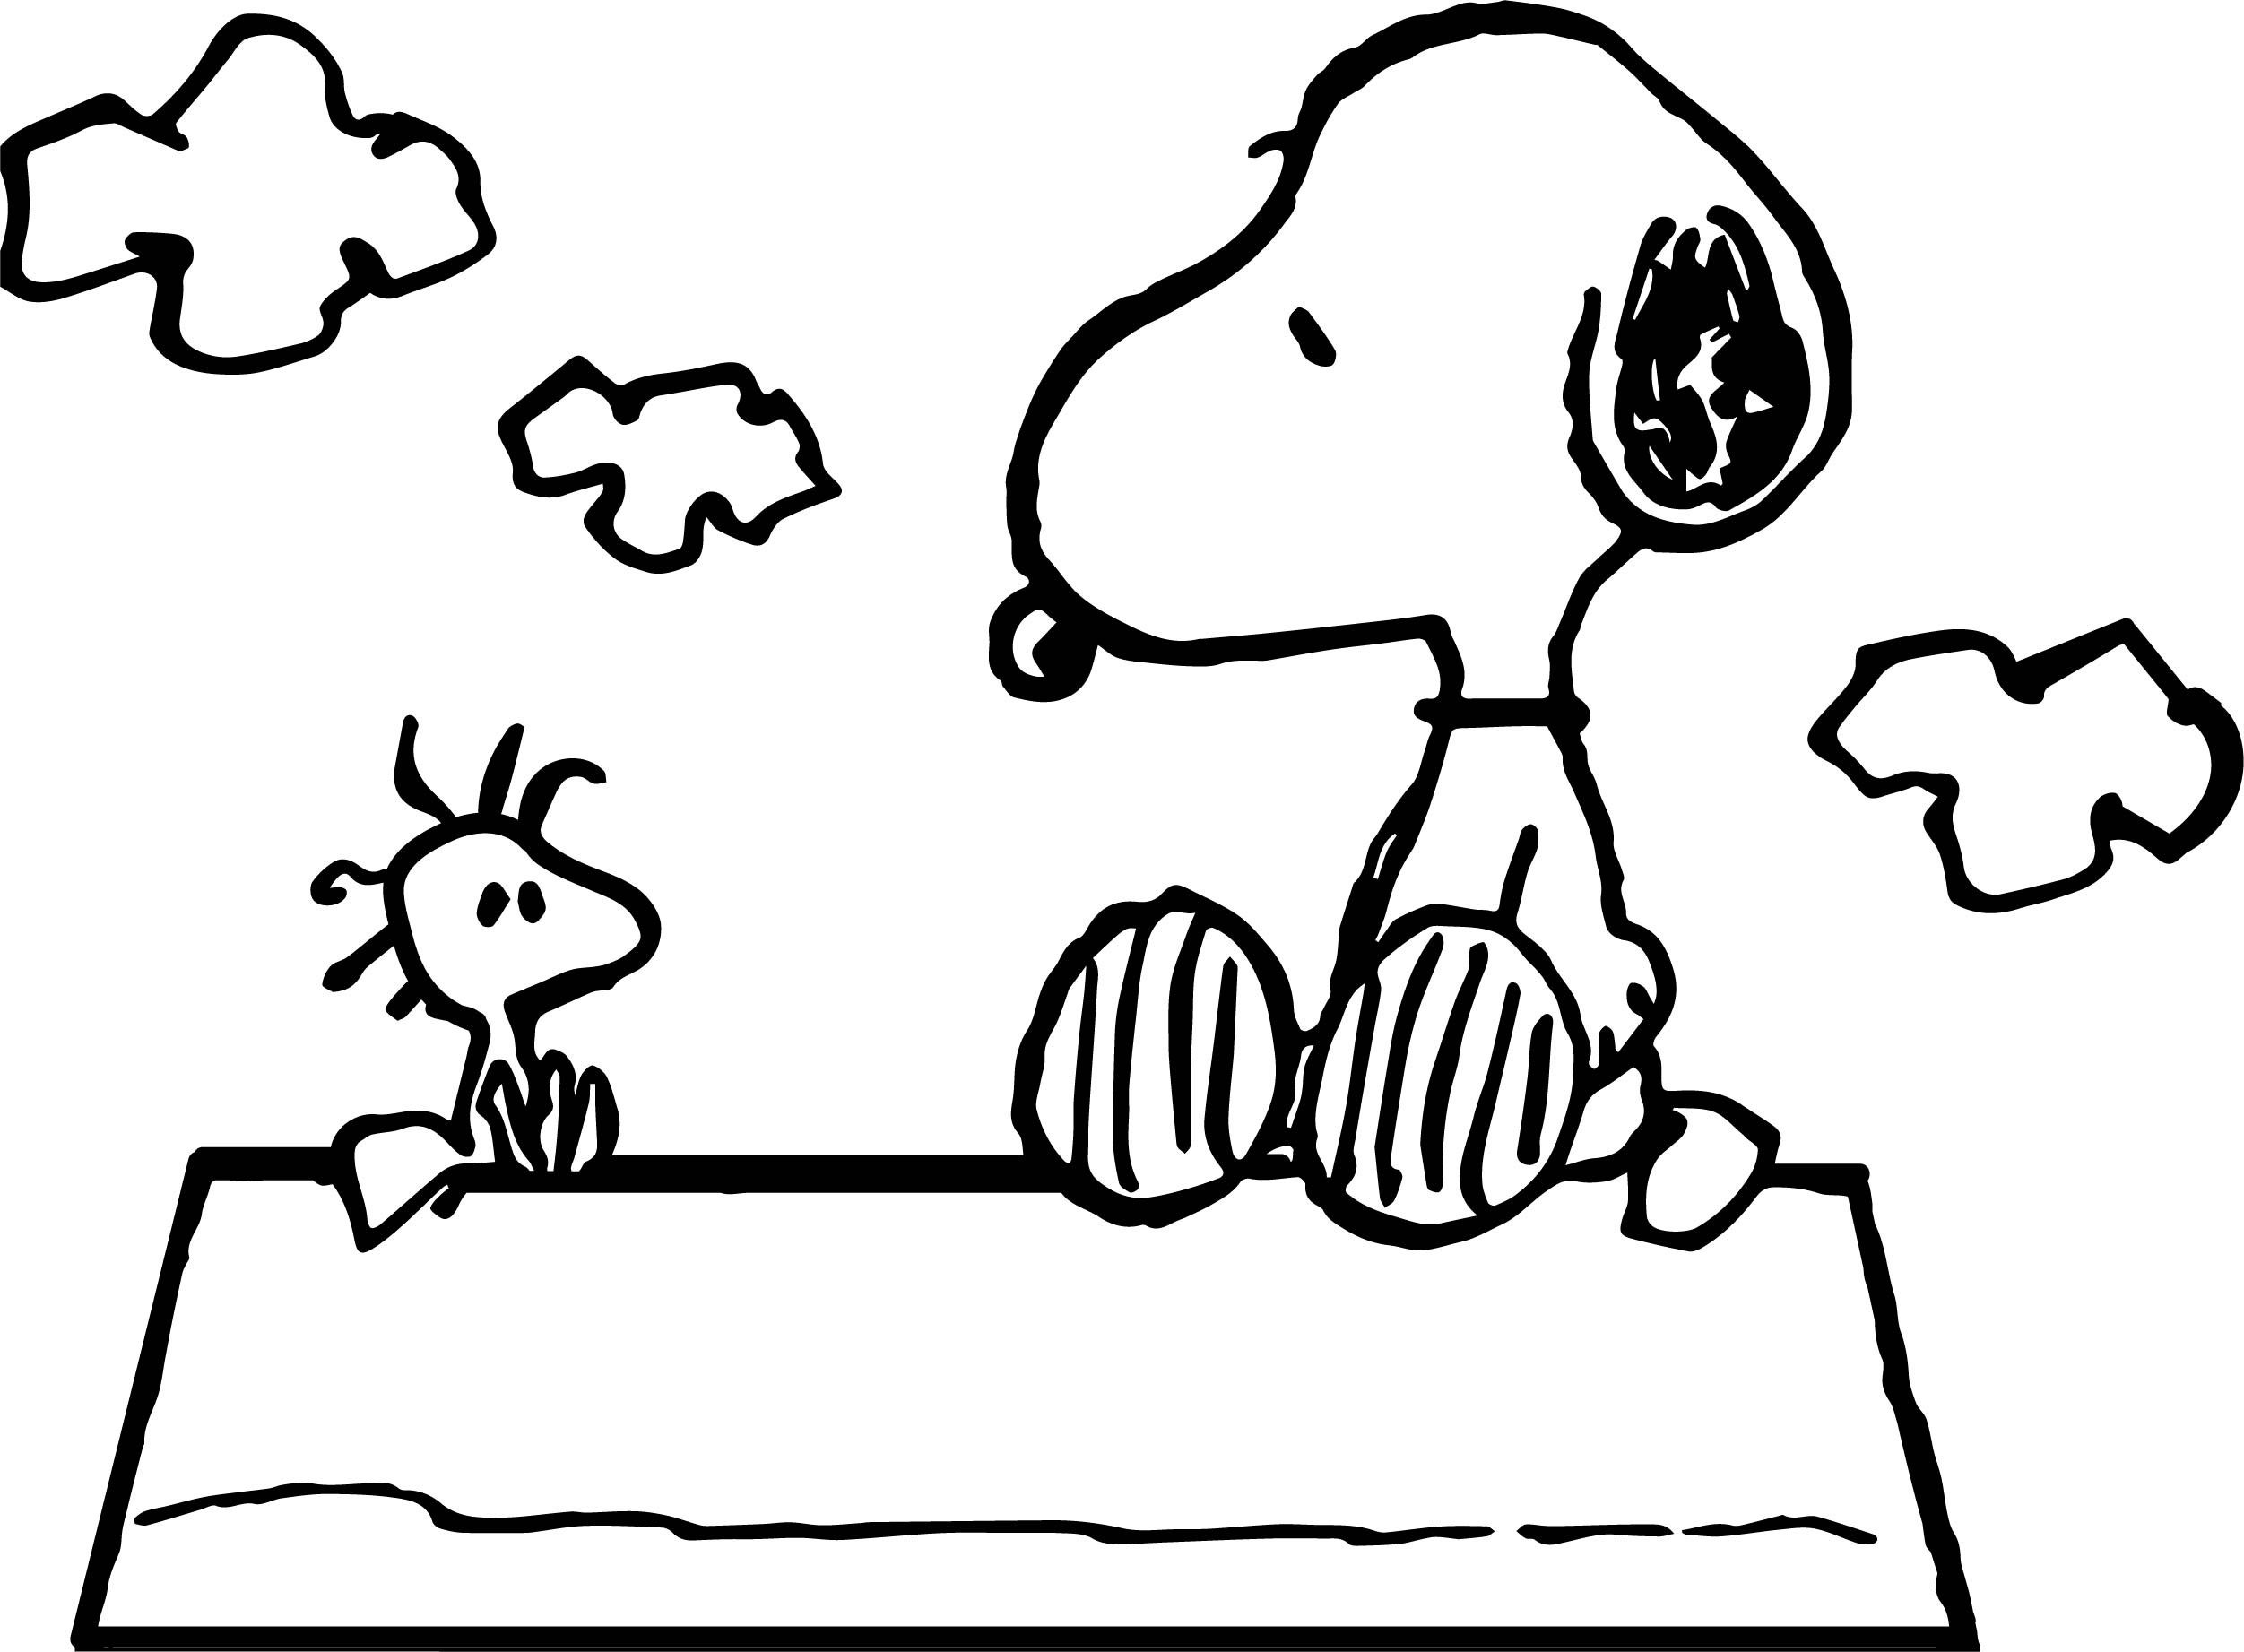 2503x1843 Peanuts Coloring Pages New Stories Tales Charlie Brown Characters